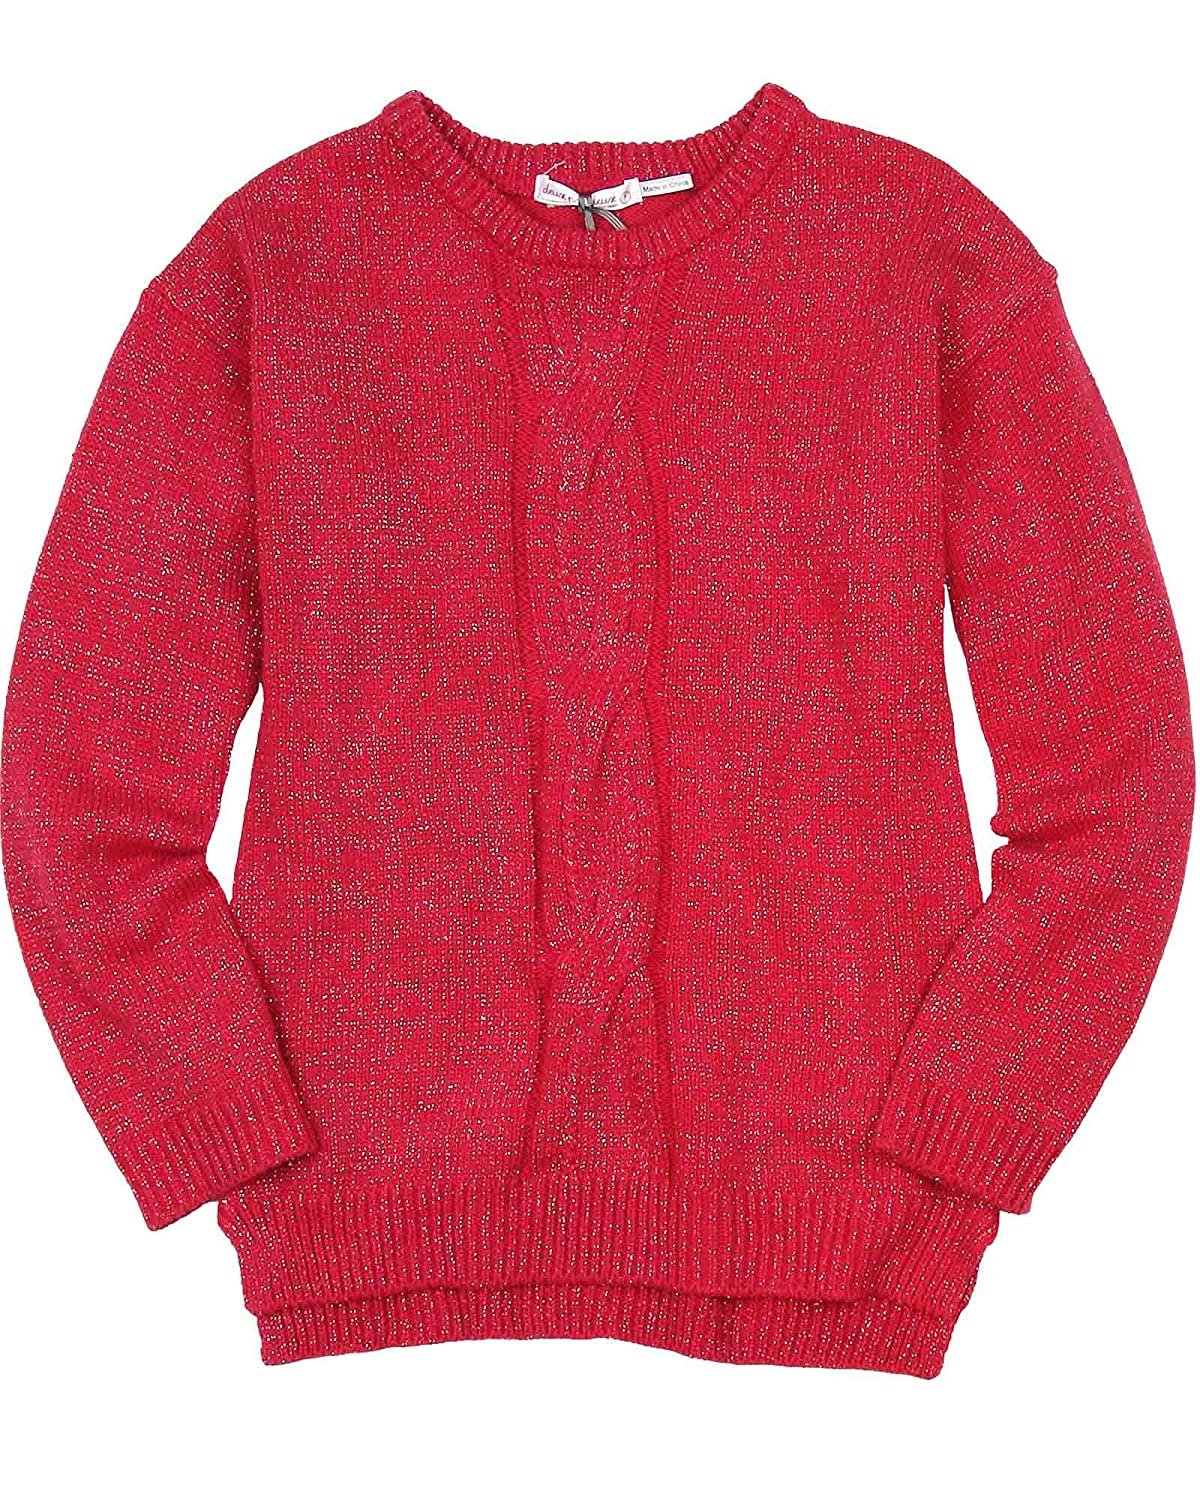 Deux par Deux Girls' Cable Sweater an Eye on Fashion, Sizes 5-12